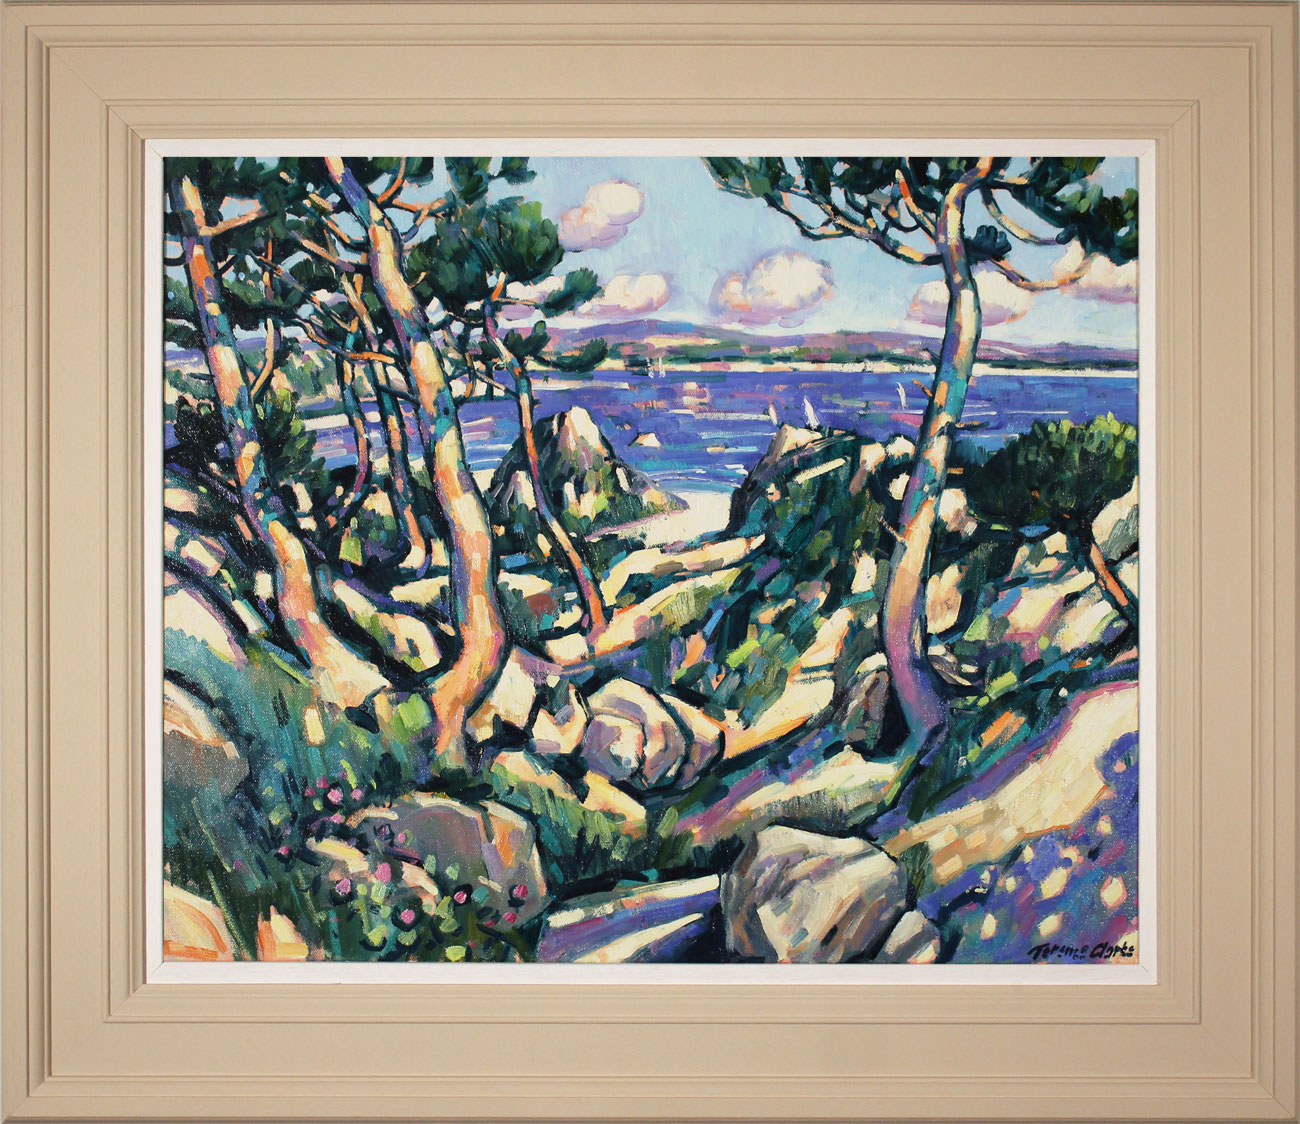 Terence Clarke, Original oil painting on canvas, Wild Pines near Theoule sur Mer, click to enlarge